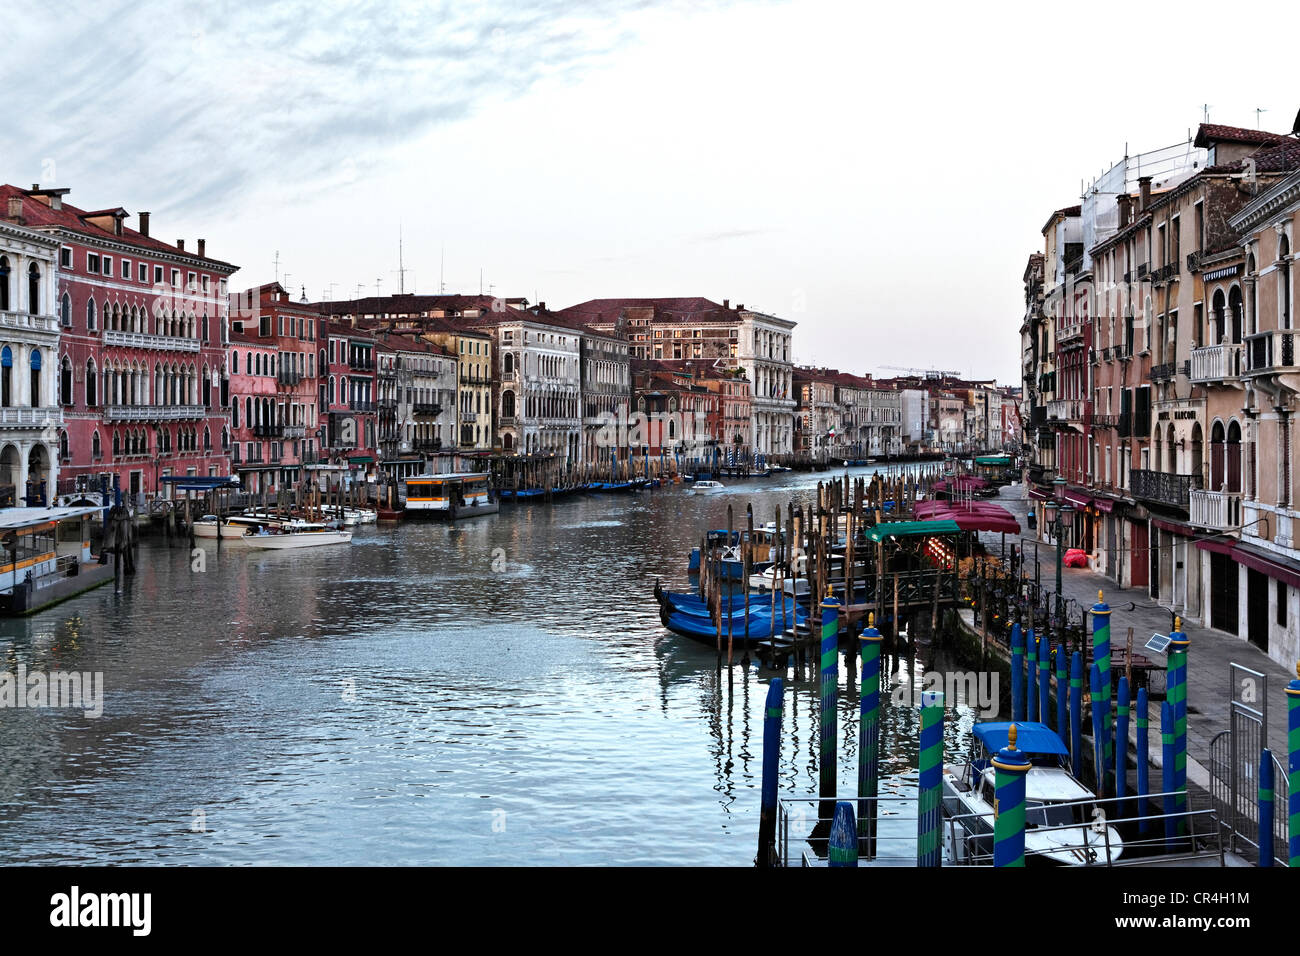 Canal or Canale Grande, San Marco district, Venice, UNESCO World Heritage Site, Venetia, Italy, Europe - Stock Image